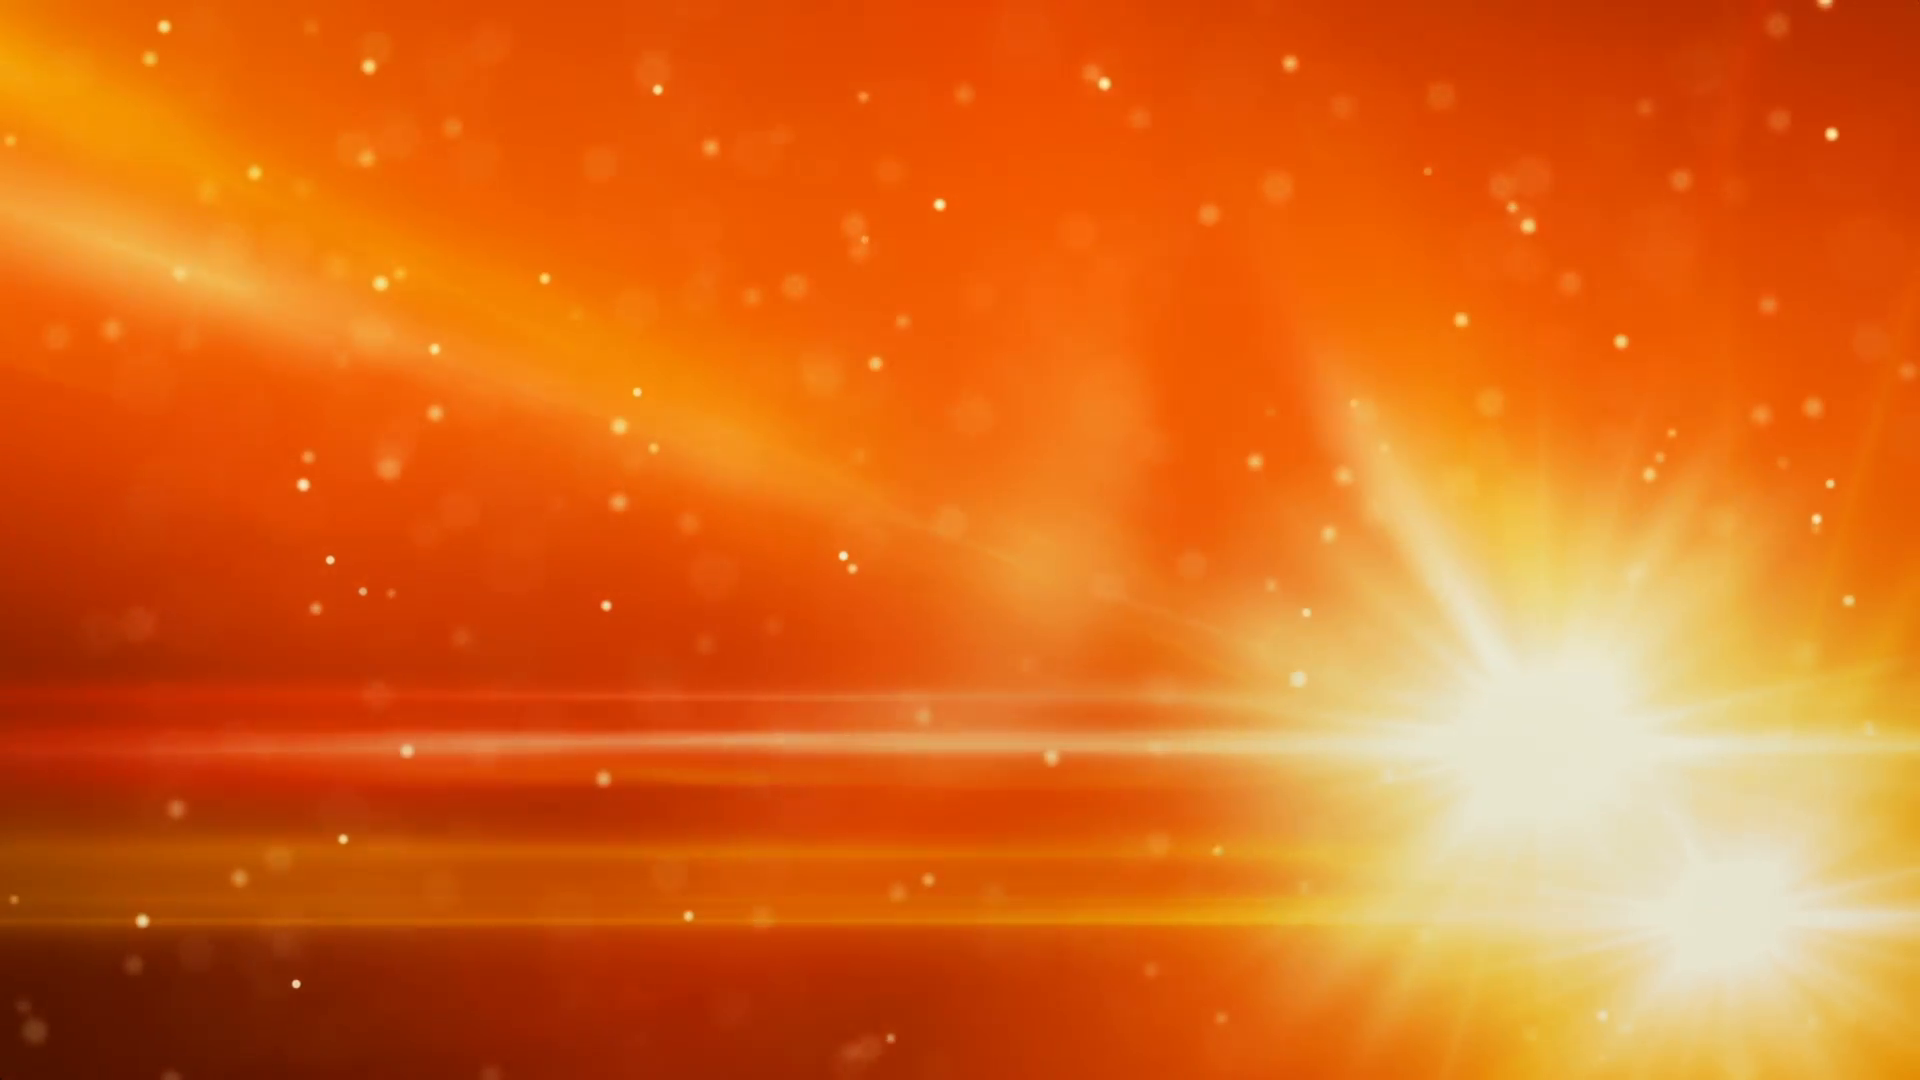 orange light flares and particles loop background Motion 1920x1080